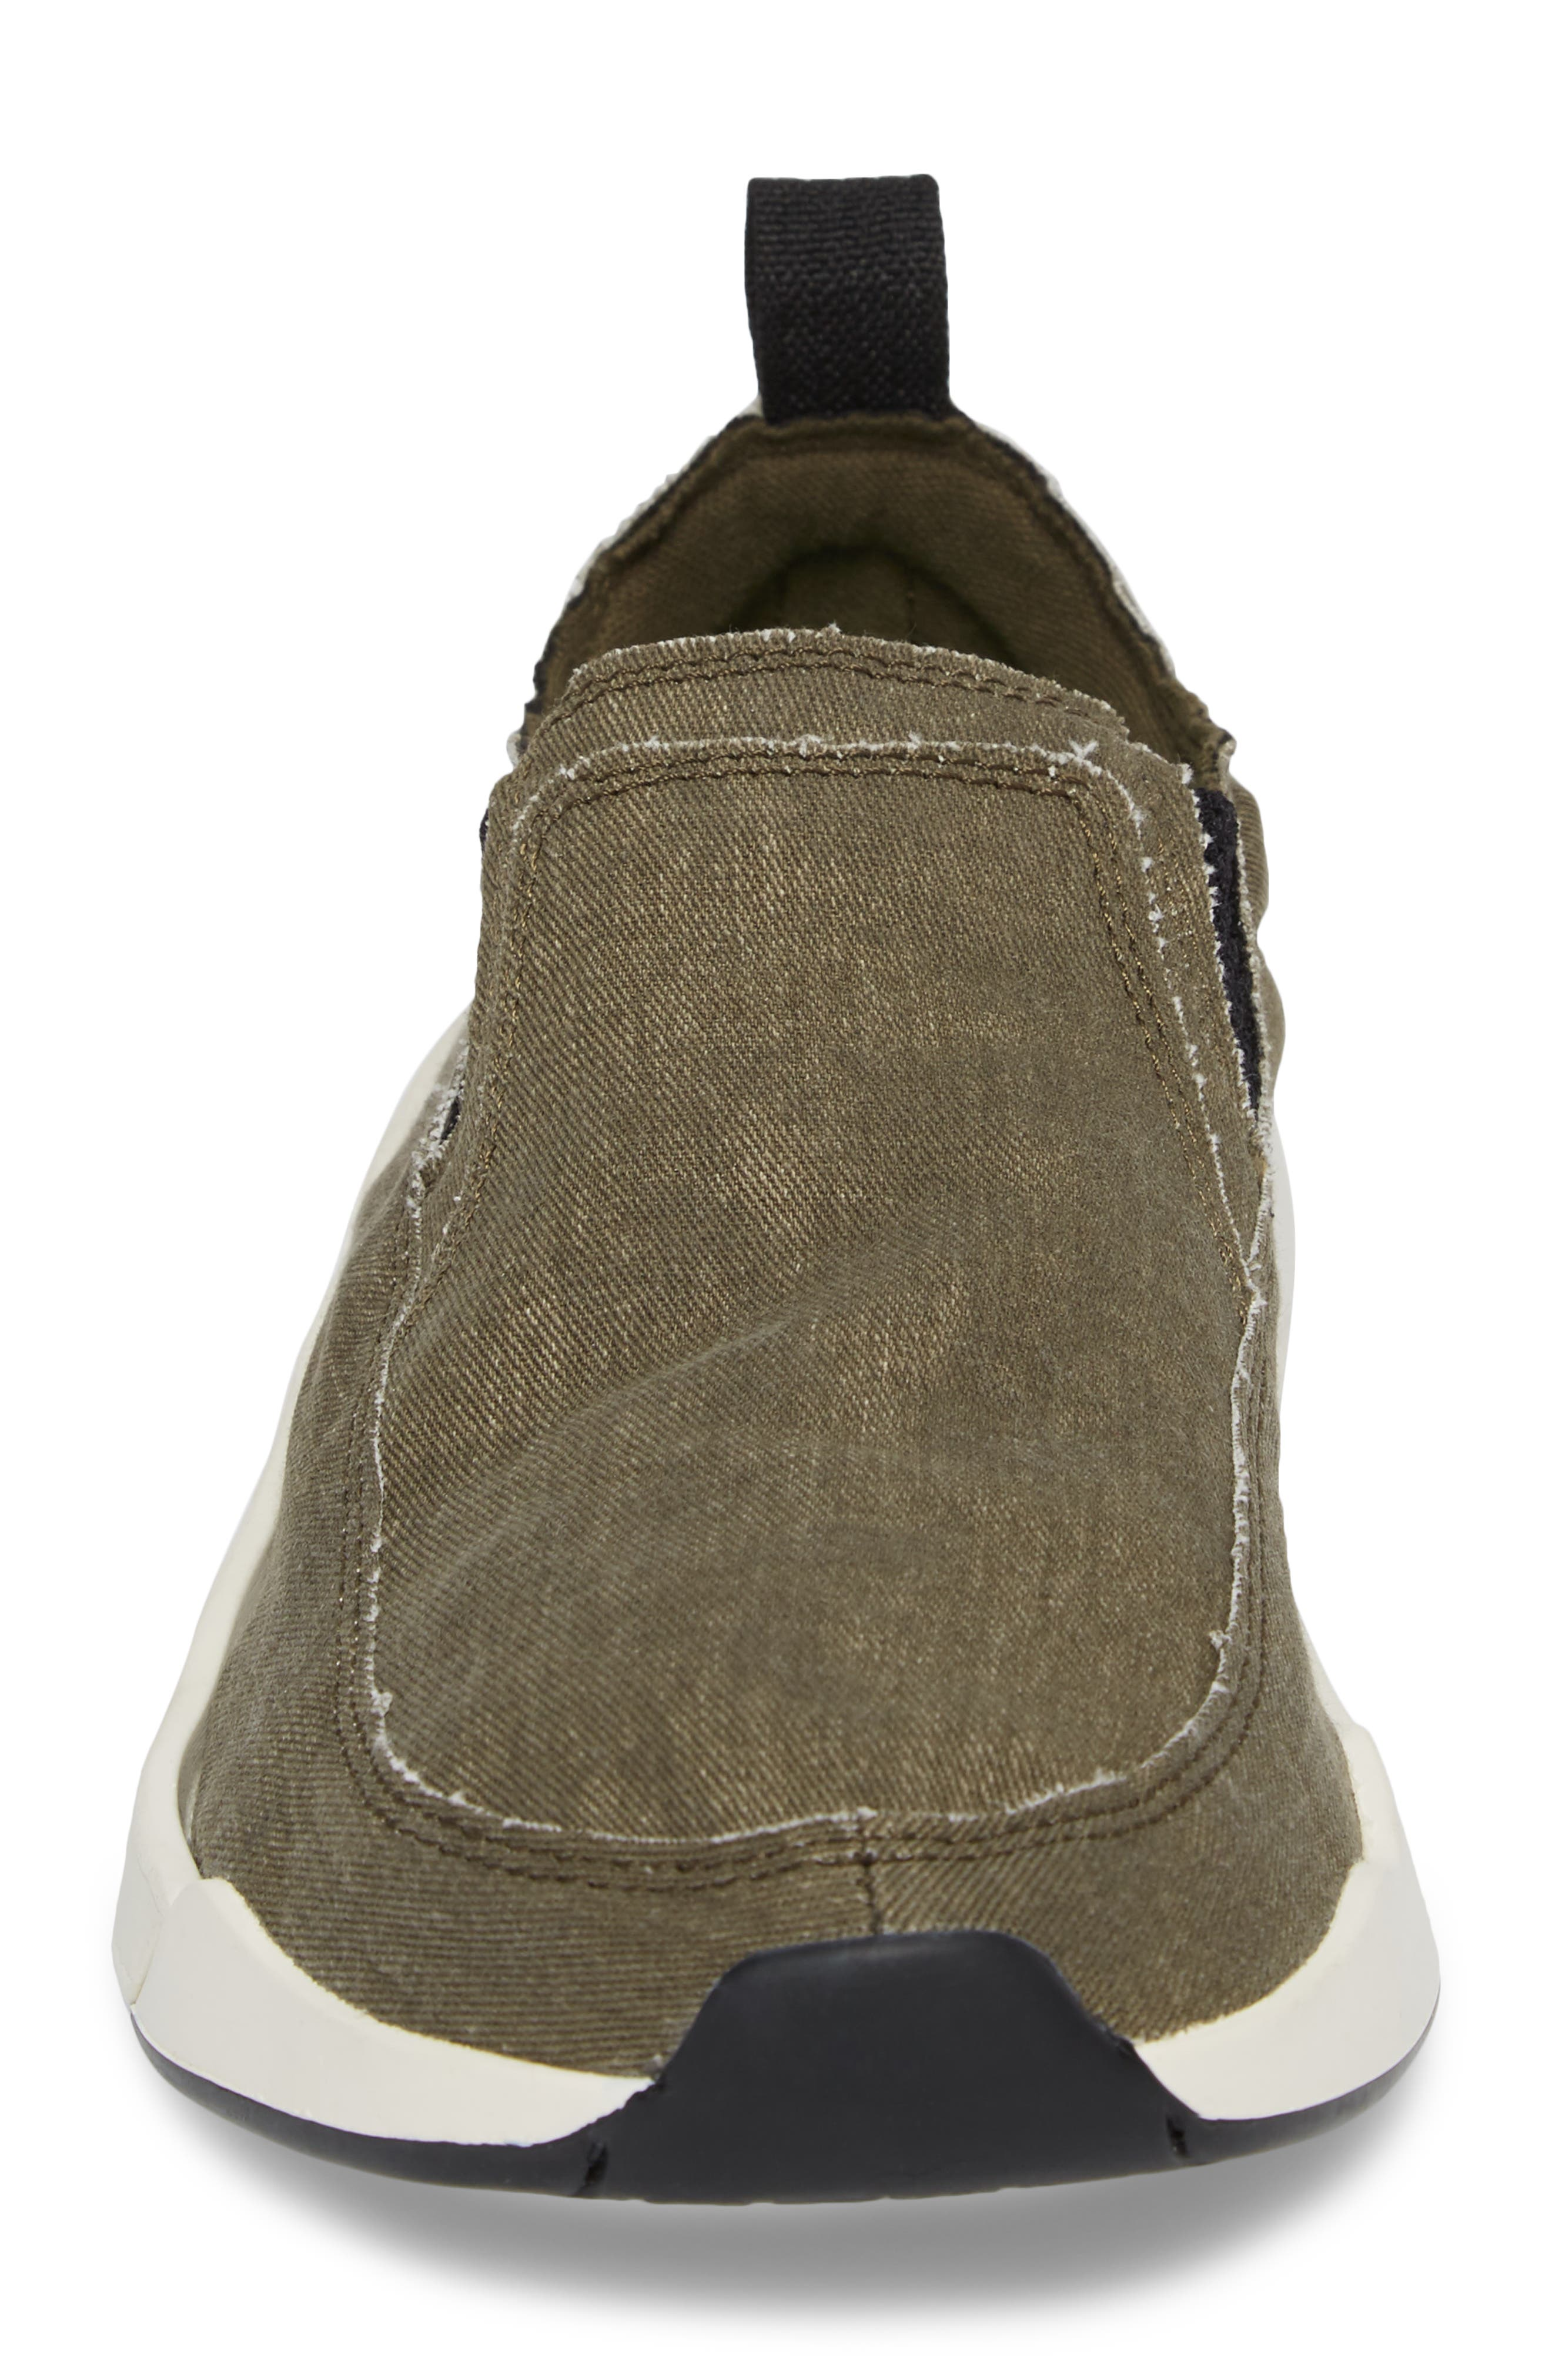 Chiba Quest Slip-On Sneaker,                             Alternate thumbnail 4, color,                             Olive